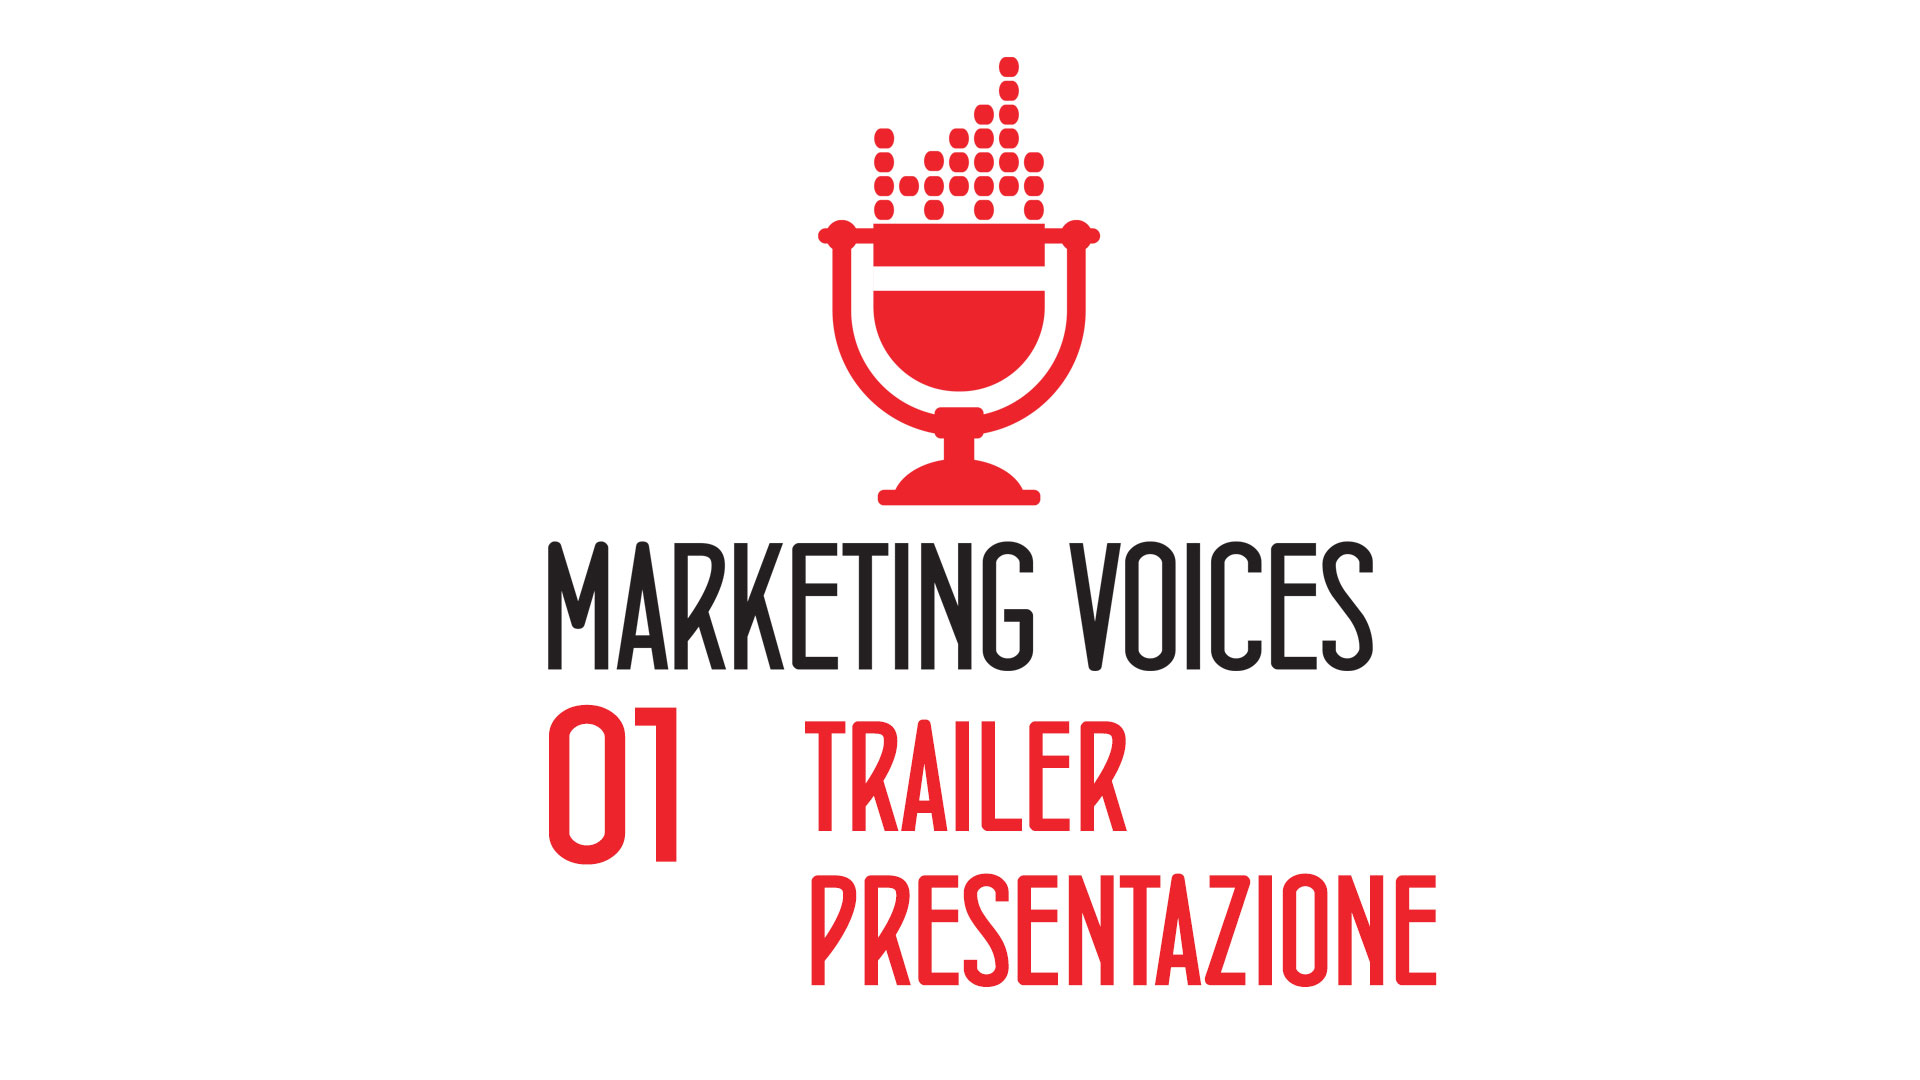 marketing voices trailer presentazione